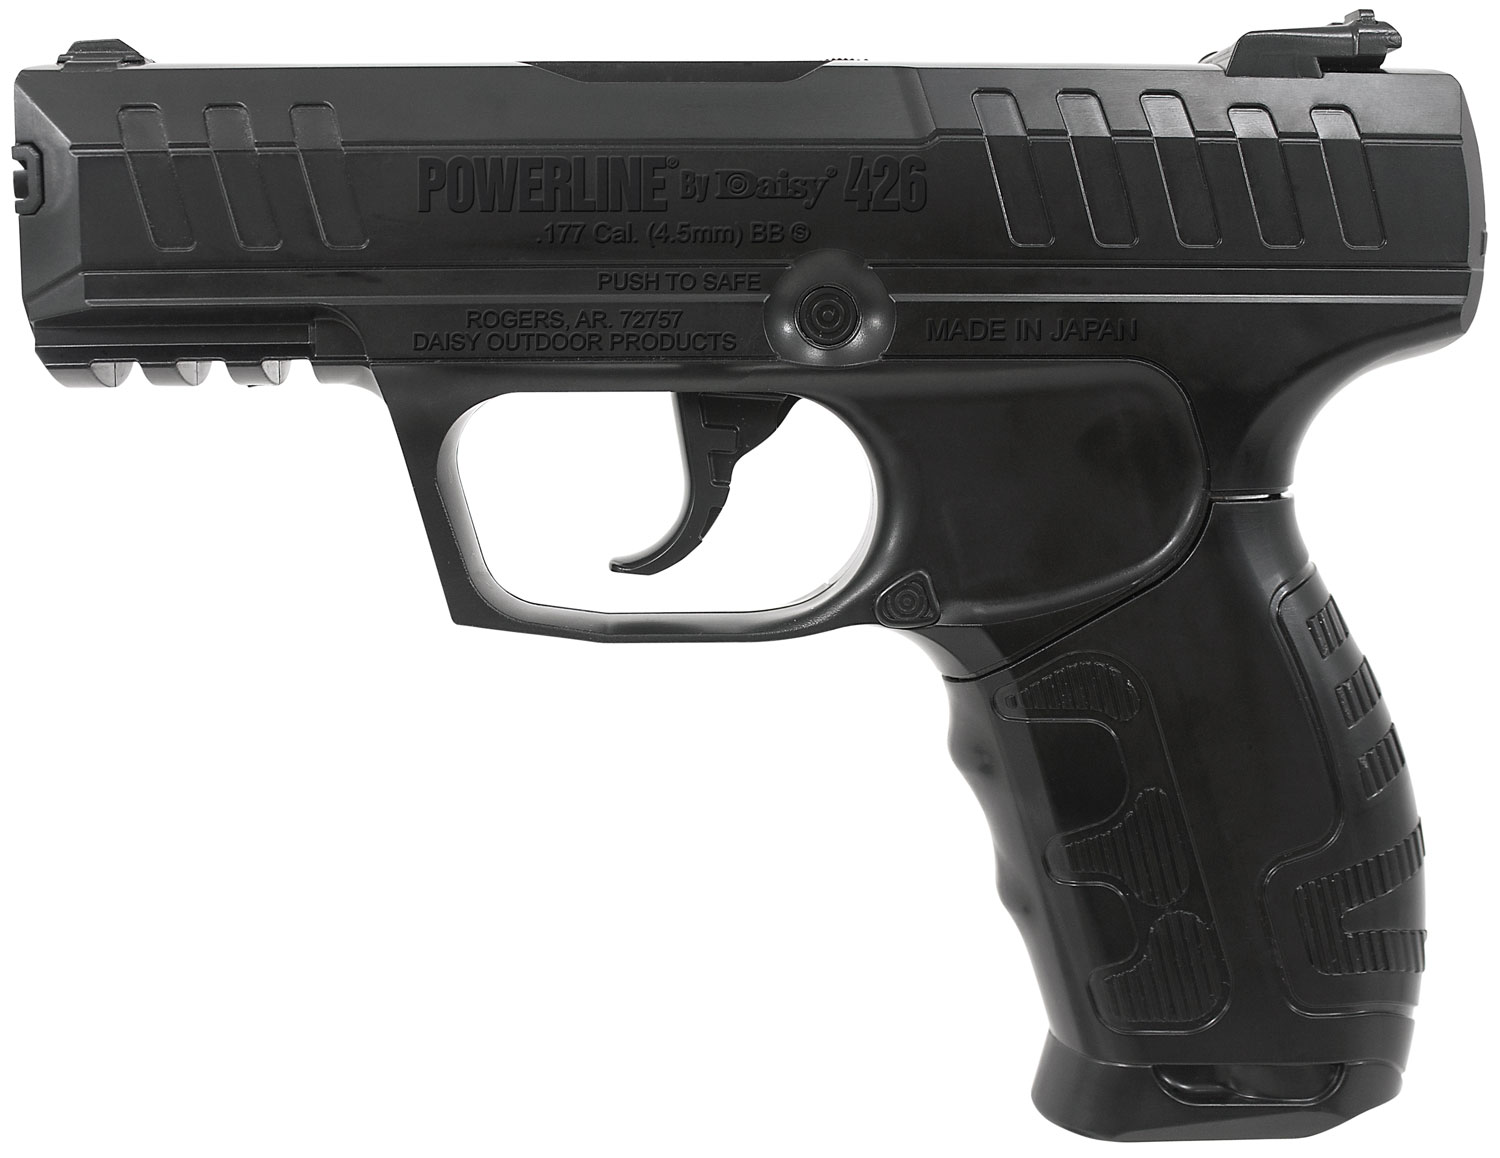 Daisy 980426442 Powerline Air Pistol Semi-Automatic .177 BB Black